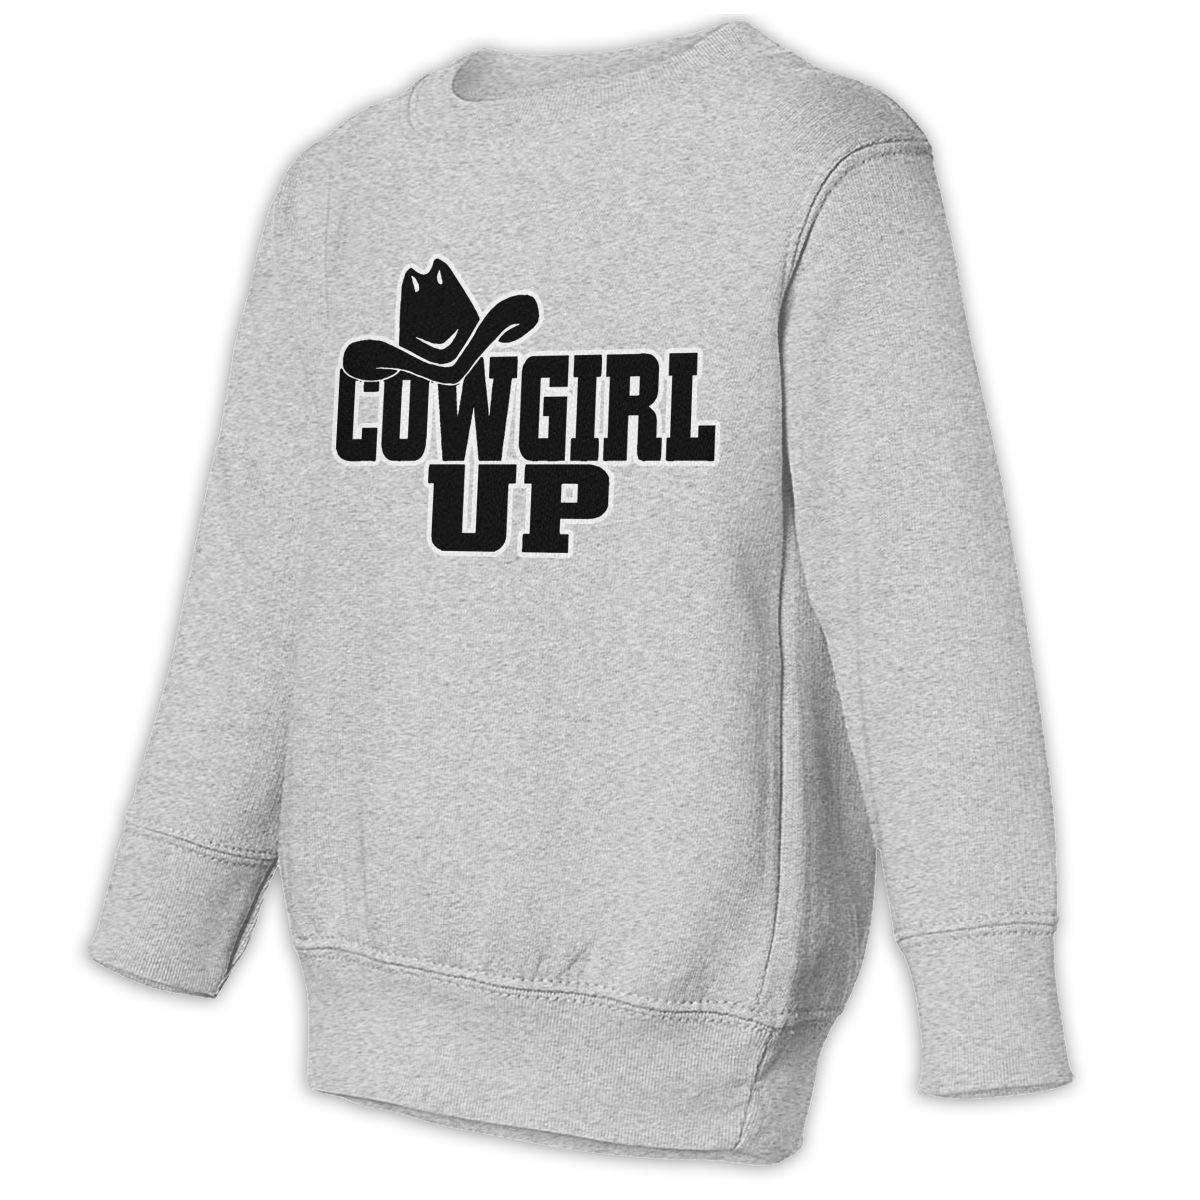 NMDJC CCQ Cowgirl Up Baby Sweatshirt Lovely Kids Hoodies Cotton T Shirts